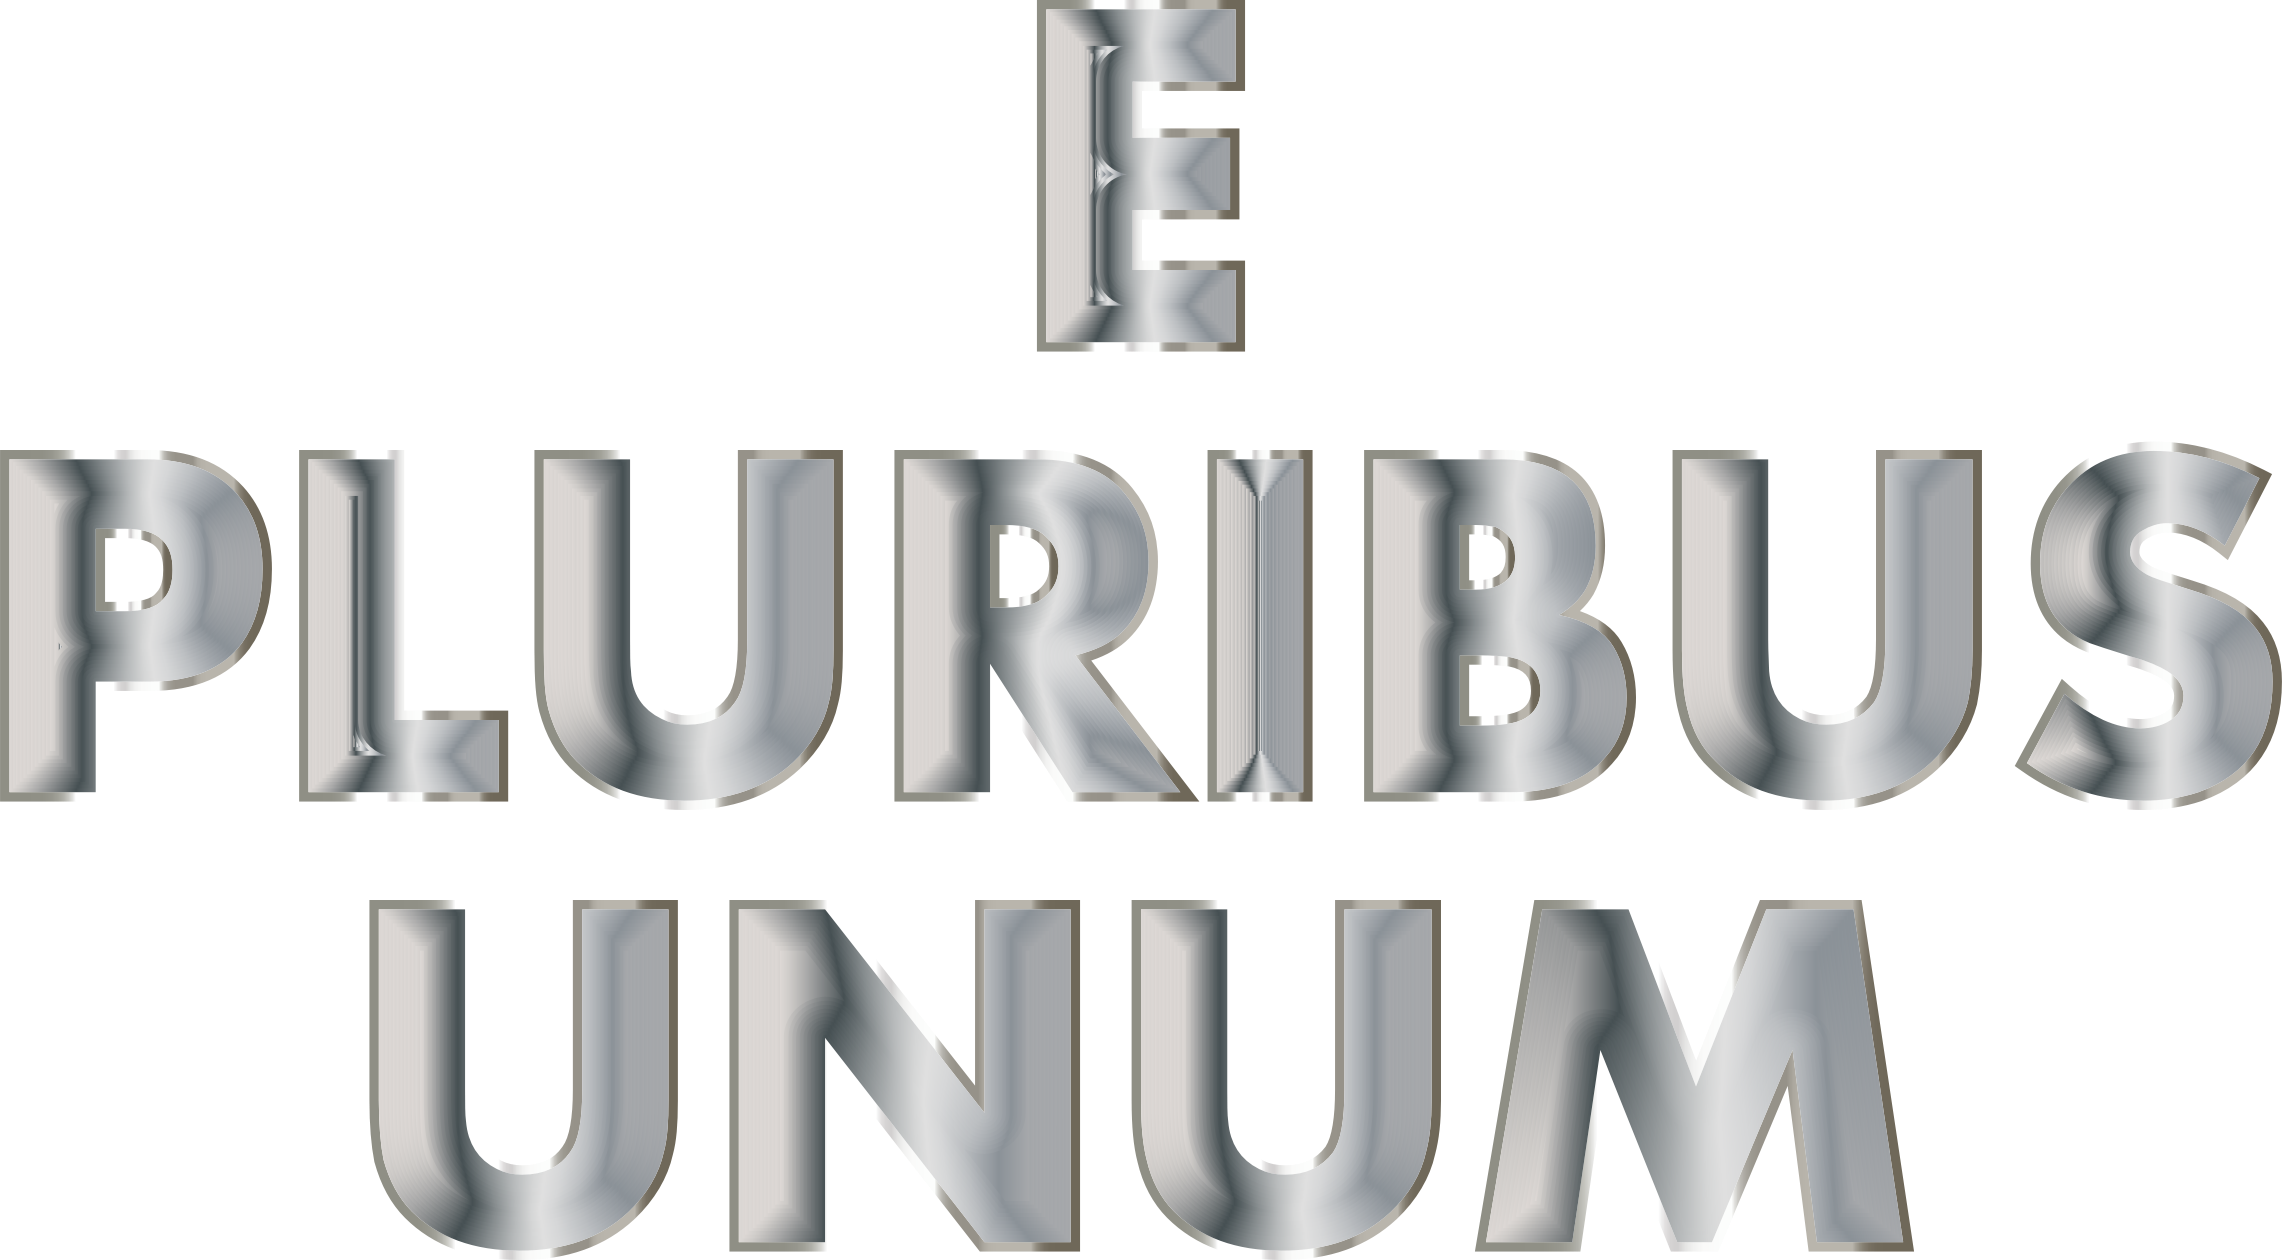 E Pluribus Unum Stainless Steel Typography No Background by GDJ